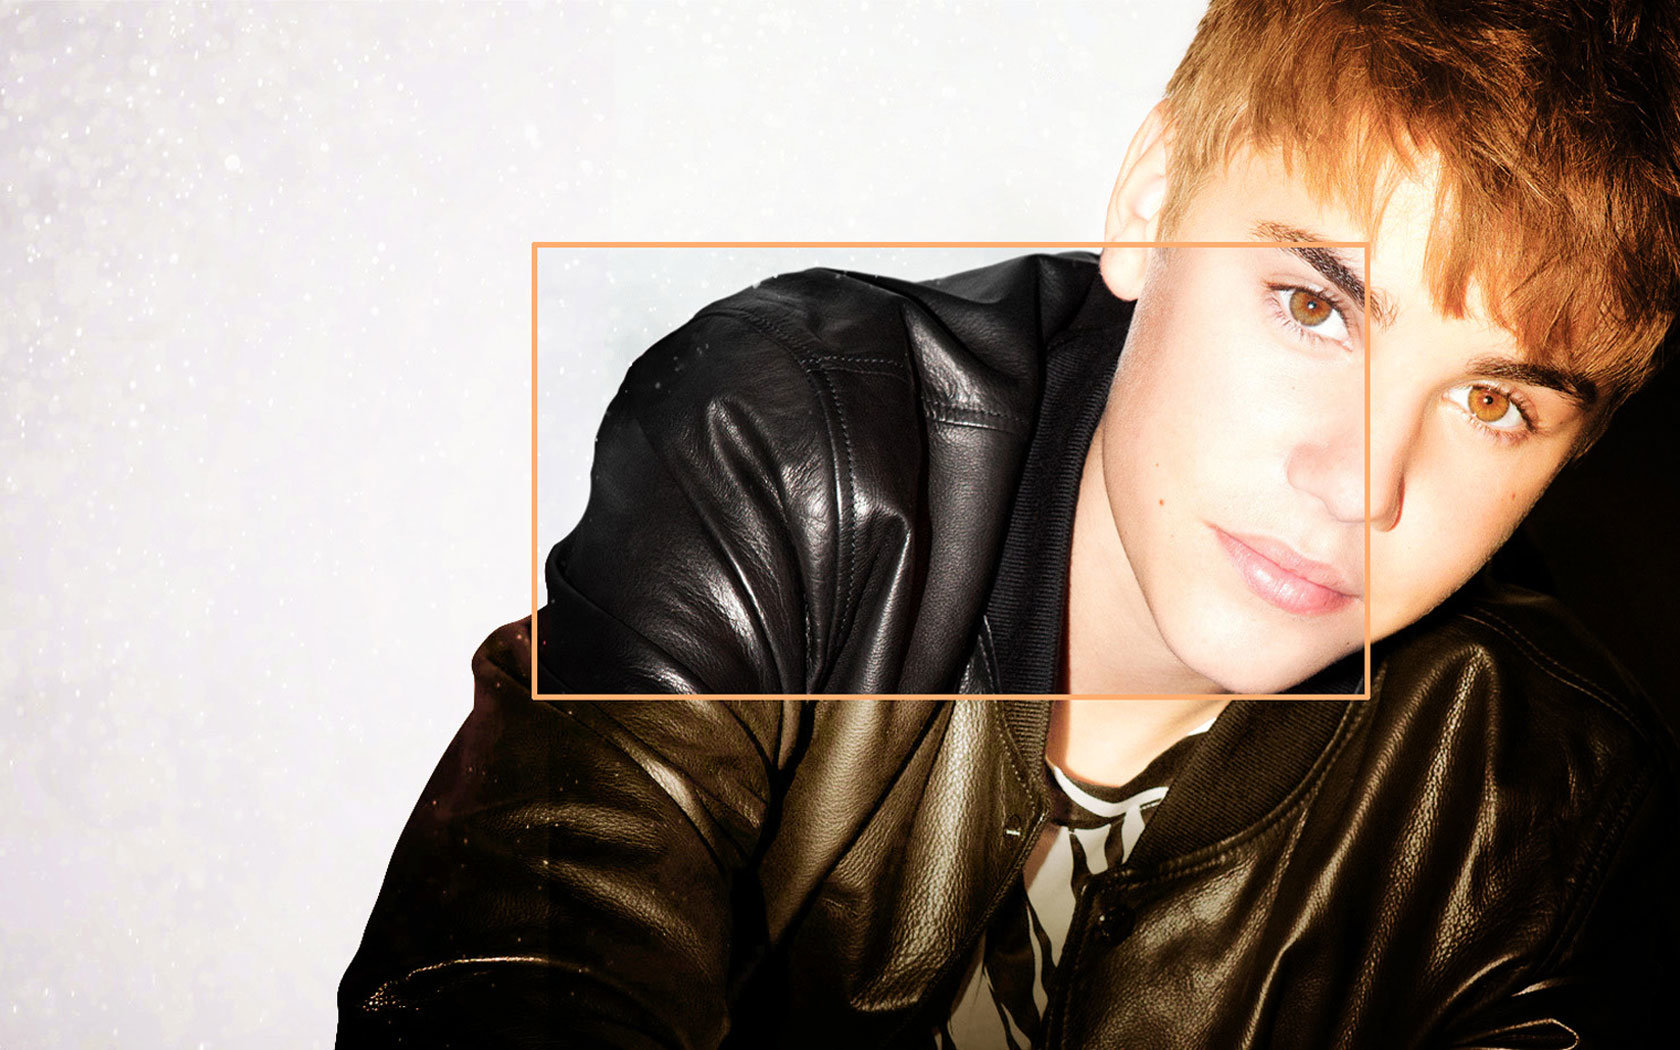 Free Justin Bieber high quality wallpaper ID:162399 for hd 1680x1050 PC